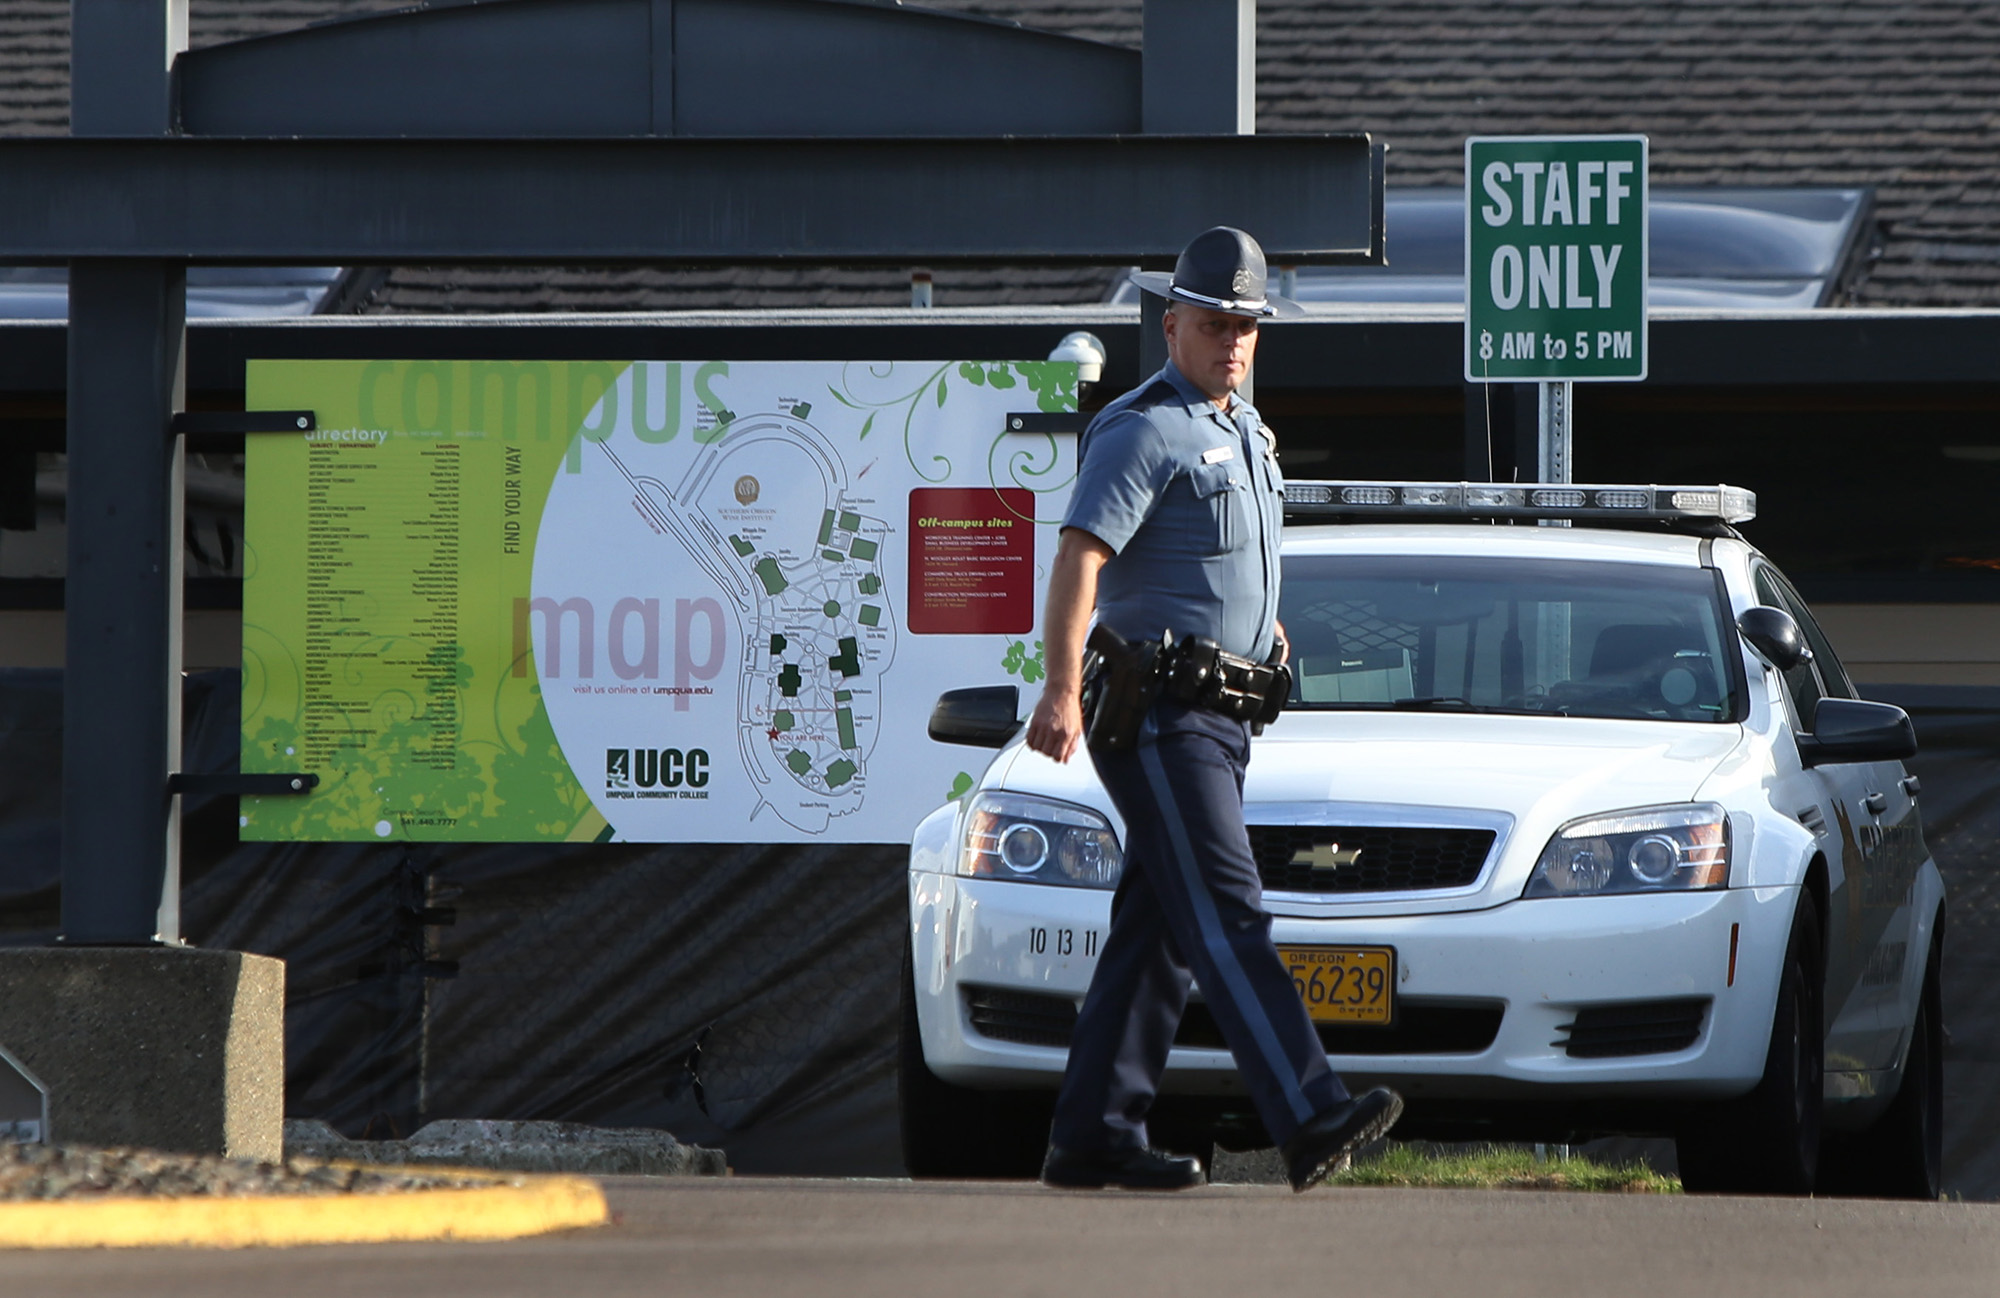 An Oregon State Patrol Trooper walks the grounds of Umpqua Community College near Roseburg, Ore. Tuesday Oct. 6, 2015 in the aftermath of the mass shooting on the Roseburg campus. (Chris Pietsch/The Register-Guard via AP)